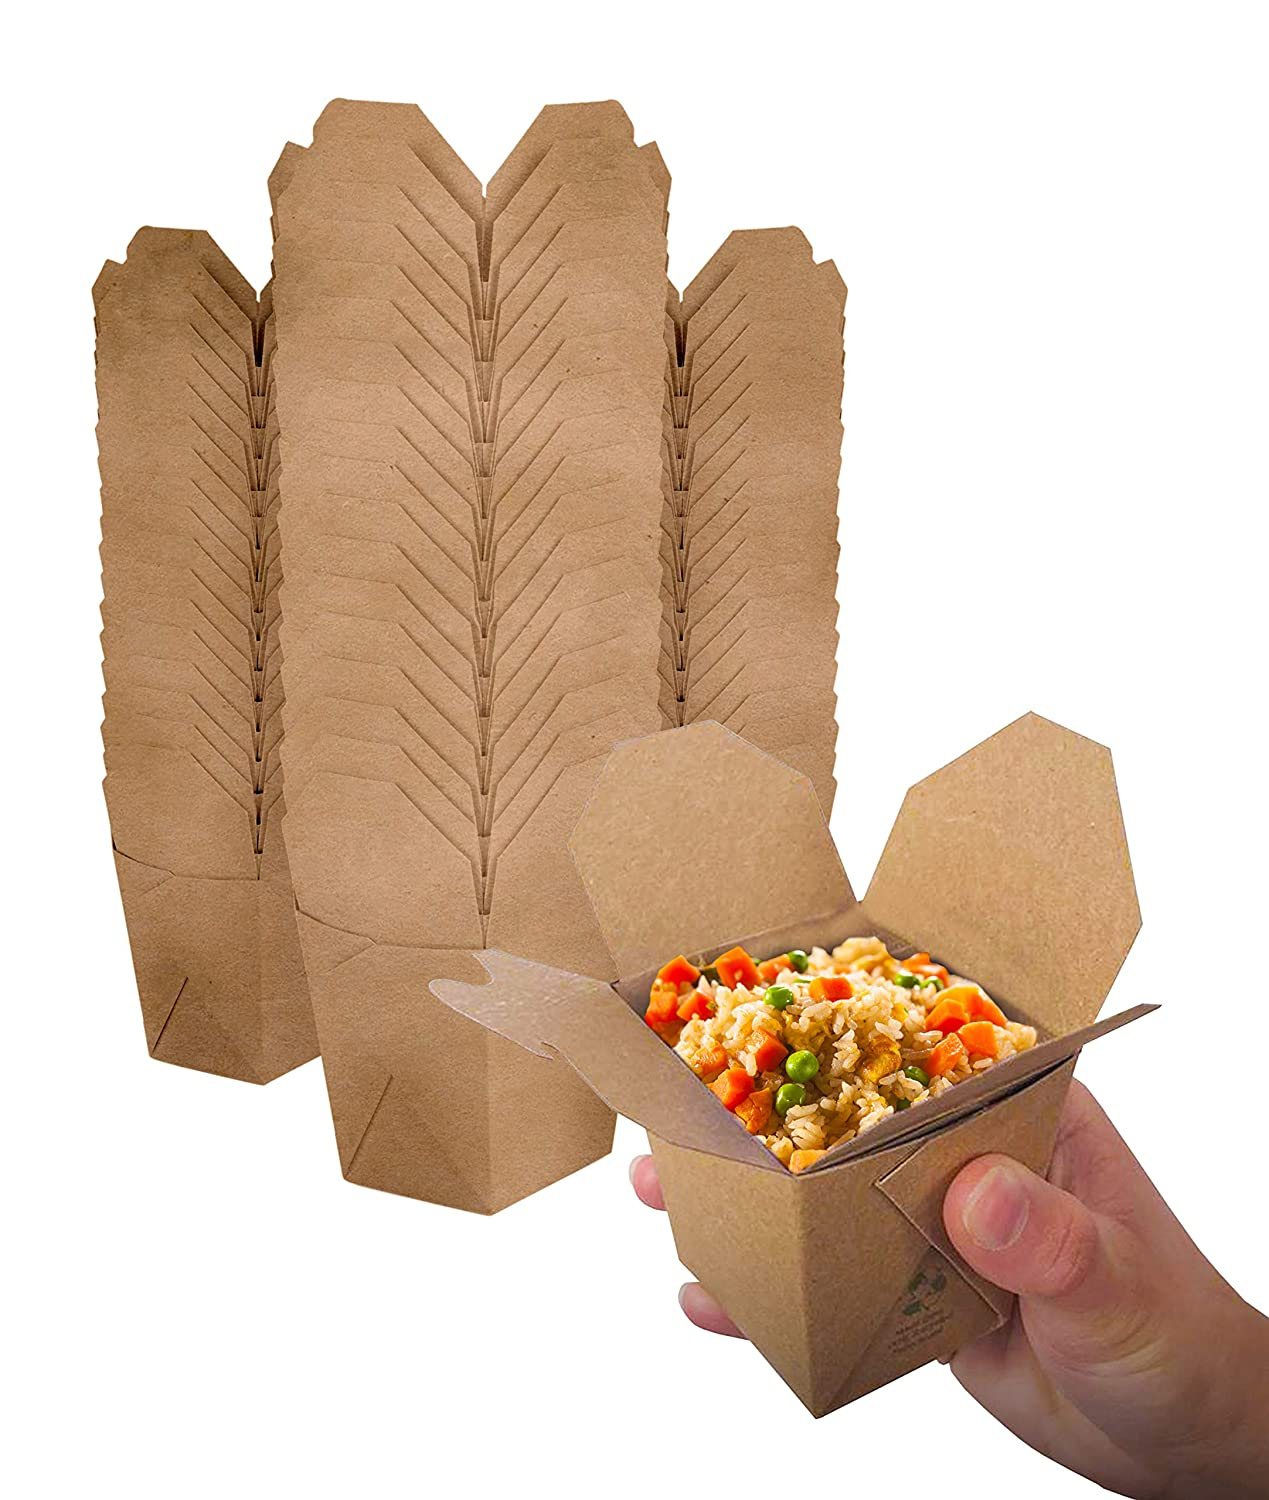 Takeout Food Containers 8 Oz Microwaveable Kraft Brown Paper Mini Chinese Take Out Box (50 Pack) Leak and Grease Resistant Stackable to Go Boxes - Recyclable Food Containers - Party Favor Boxes